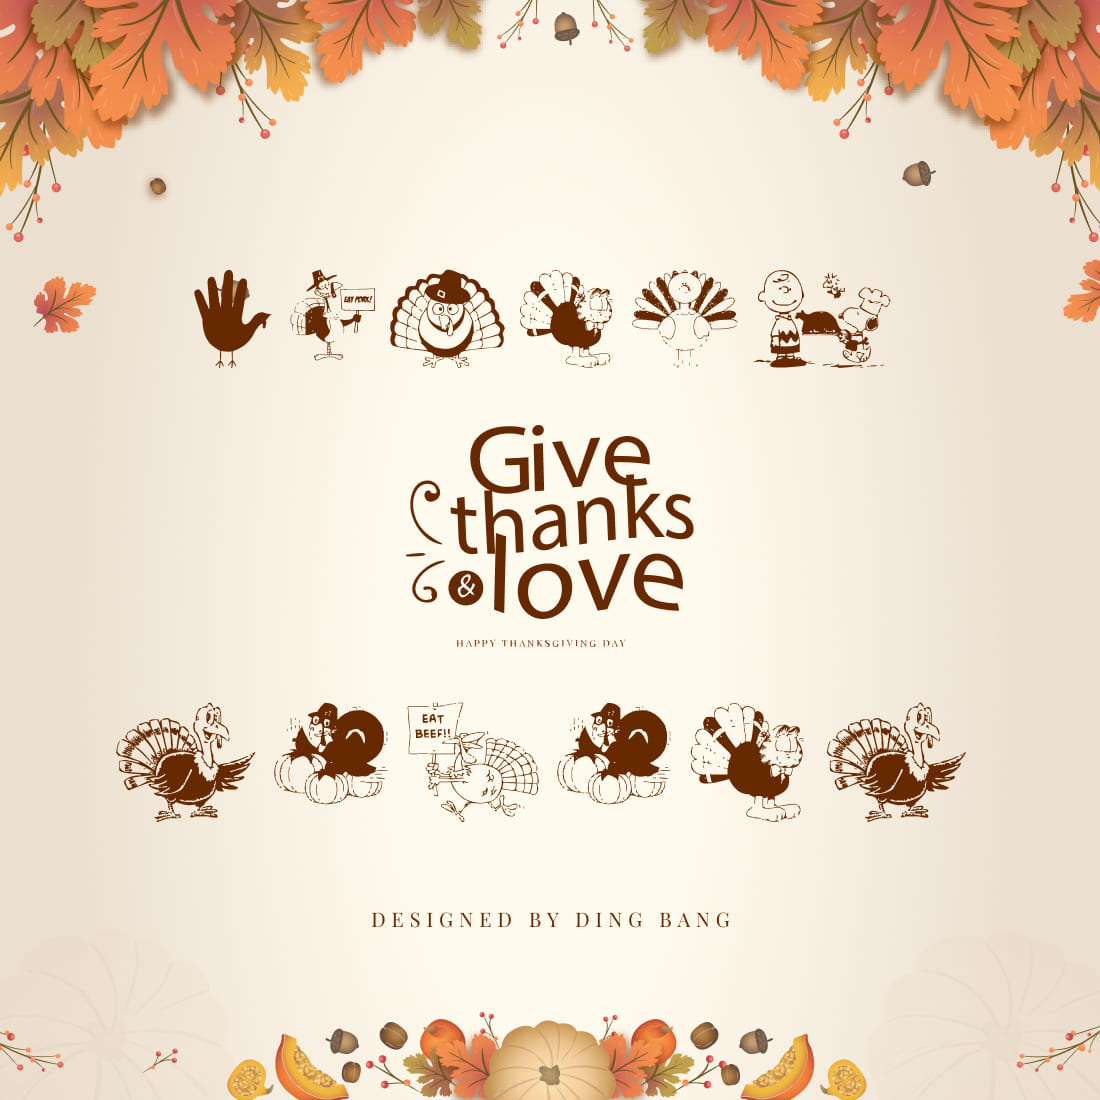 Thanksgiving Turkey Free Symbol Font Cover Collage Image.